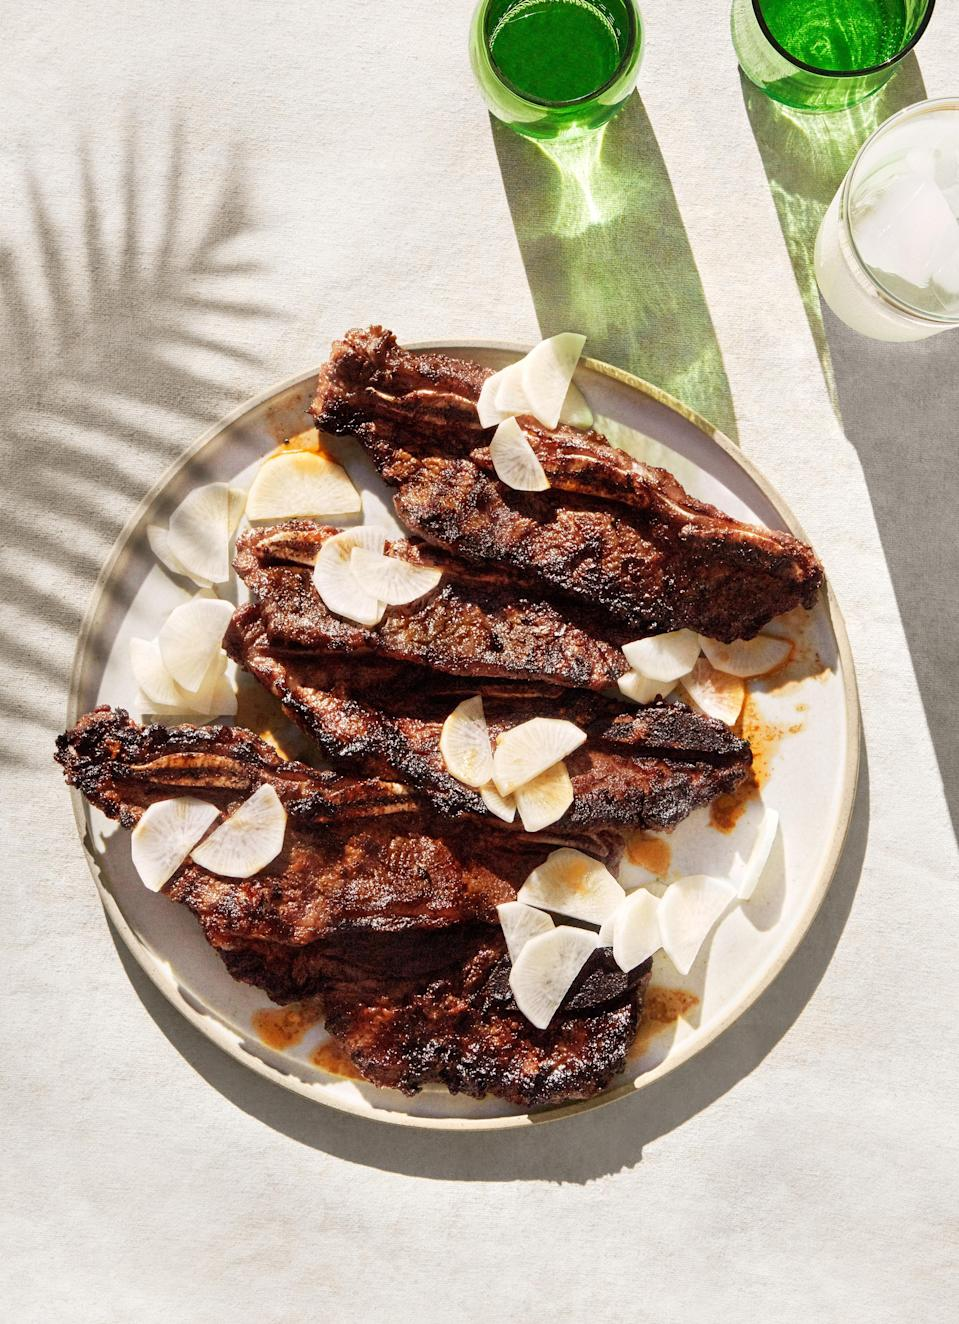 "If you've ever had kalbi at a Korean barbecue restaurant, you've had grilled flanken-style short ribs. For this recipe, look for them prepackaged in the meat case, or ask your butcher. This concentrated, aromatic, spicy-sweet chile paste seasons the ribs robustly in as little as 15 minutes. <a href=""https://www.bonappetit.com/recipe/grilled-chile-lemongrass-short-ribs-with-pickled-daikon?mbid=synd_yahoo_rss"" rel=""nofollow noopener"" target=""_blank"" data-ylk=""slk:See recipe."" class=""link rapid-noclick-resp"">See recipe.</a>"